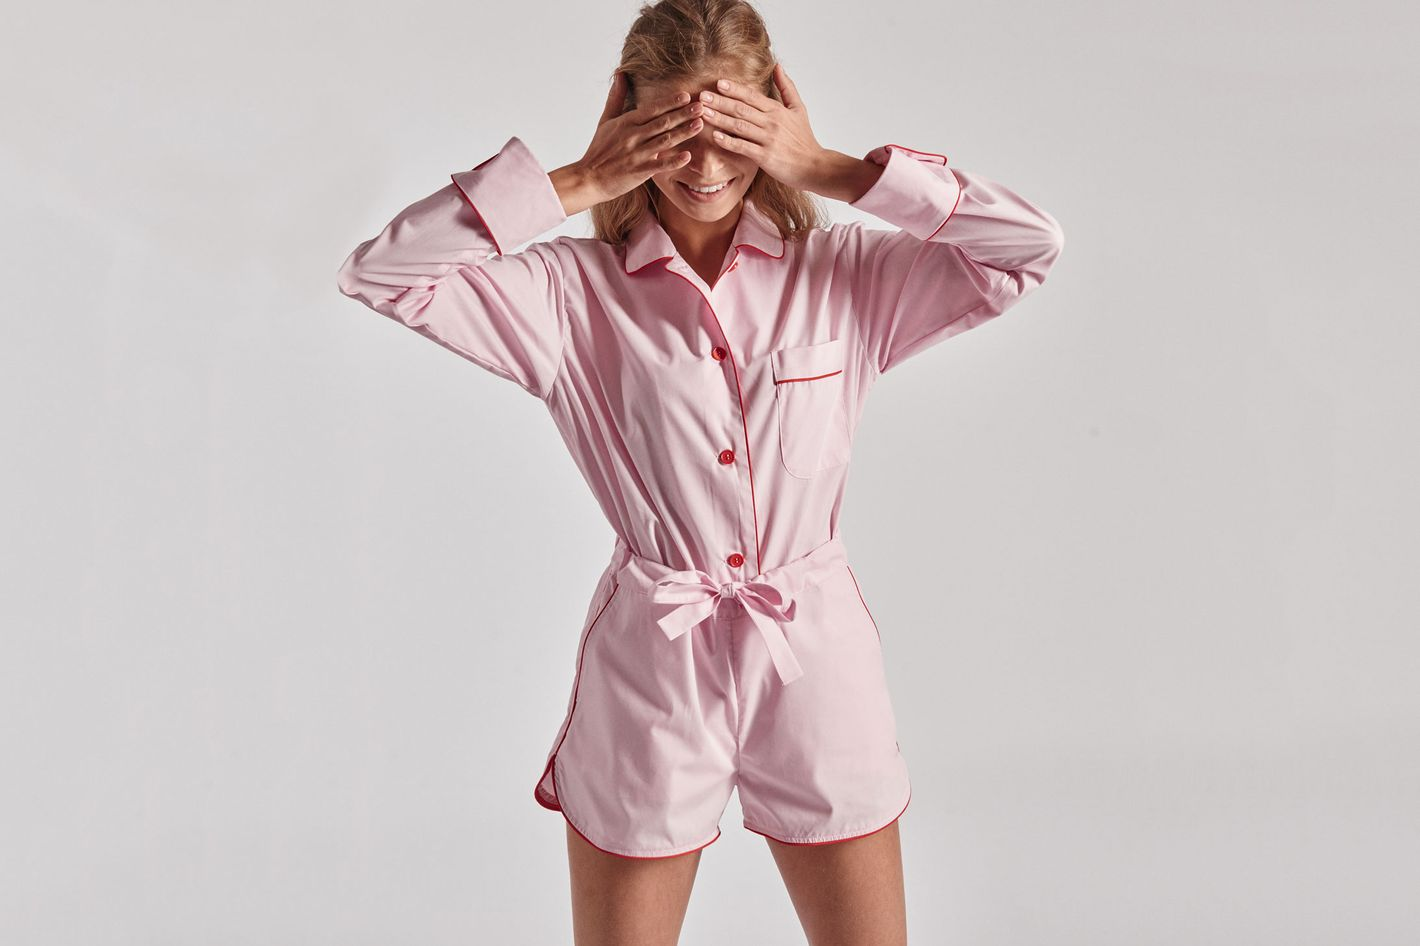 f17262439b77 The Fashion Girl Pajama Set. Donut Pink Pajama Set with Shorts